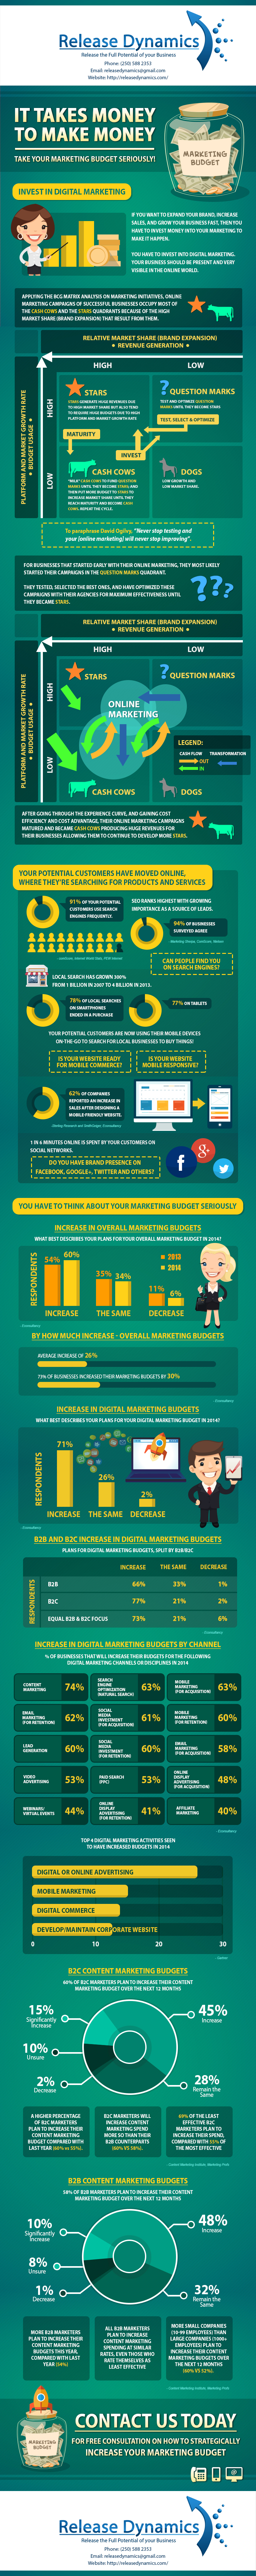 ReleaseDynamics.com-Marketing-Budget-Infographic